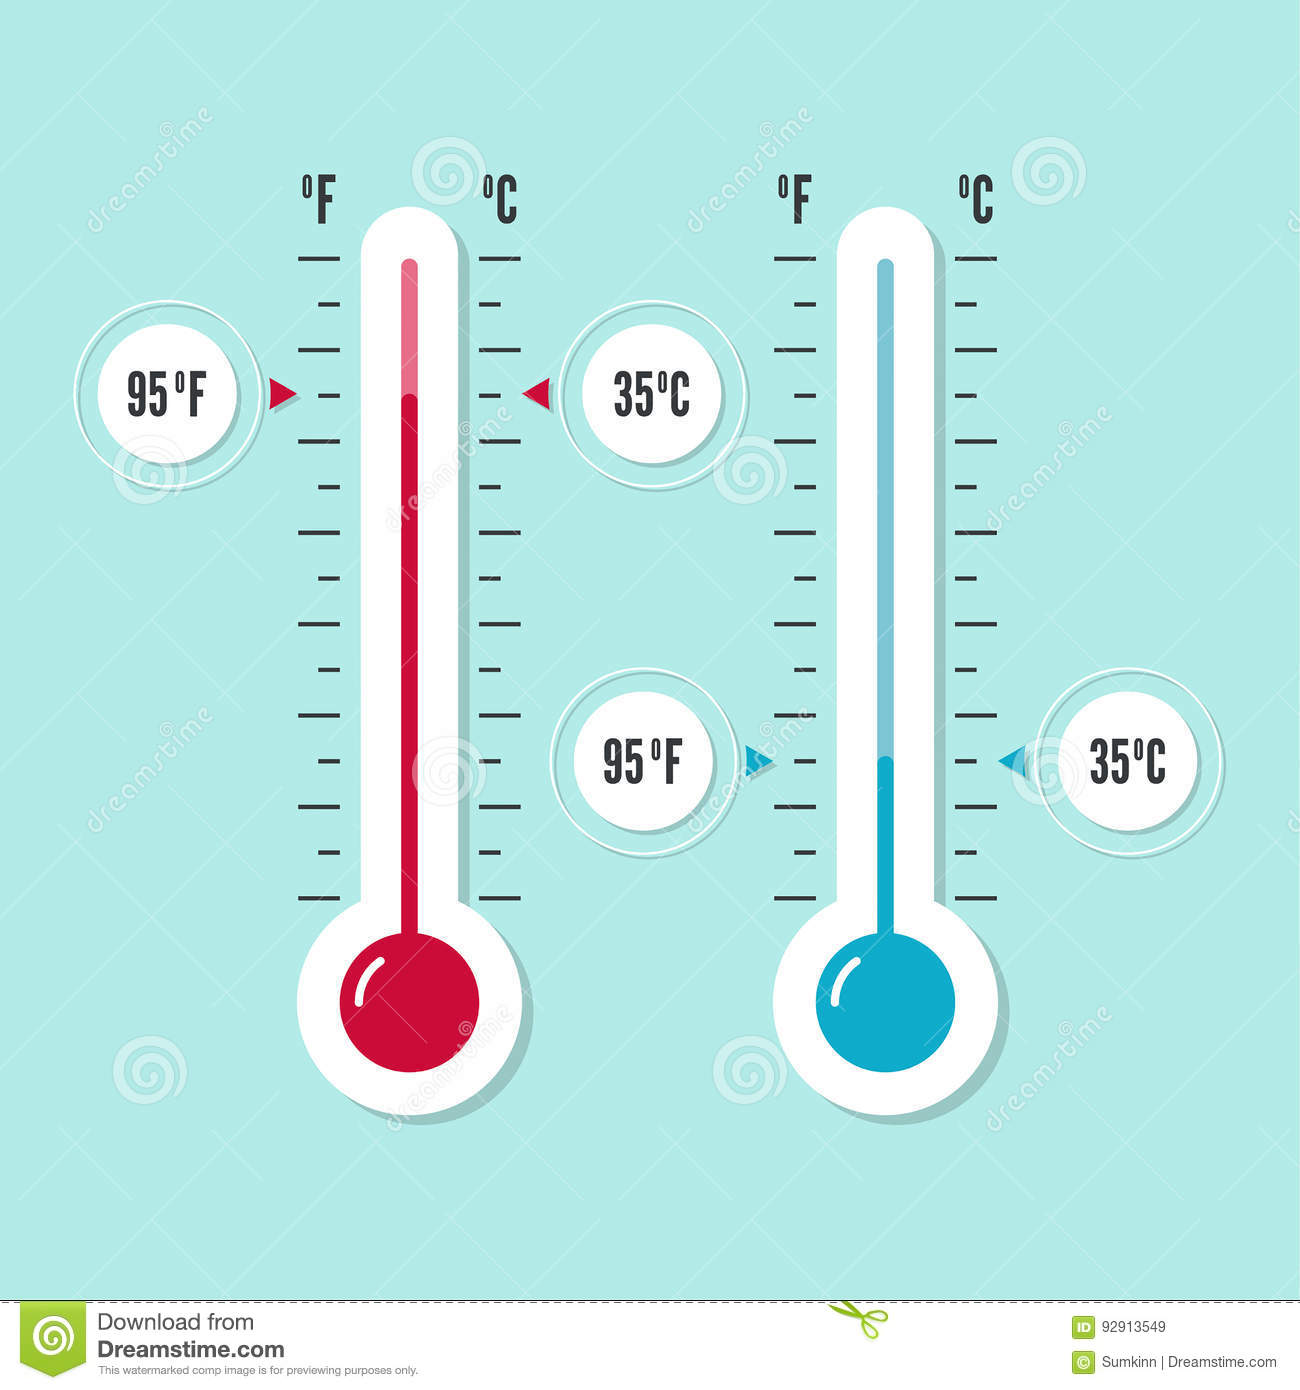 Termometro Da Meteorologia Com Celsius Fahrenheit Ilustracao Do Vetor Ilustracao De Meteorologia Termometro 92913549 But is there any mechanic or rule that says i can't just use it at a rang of 5ft without throwing it (and therefore not having to lose it or recover. dreamstime